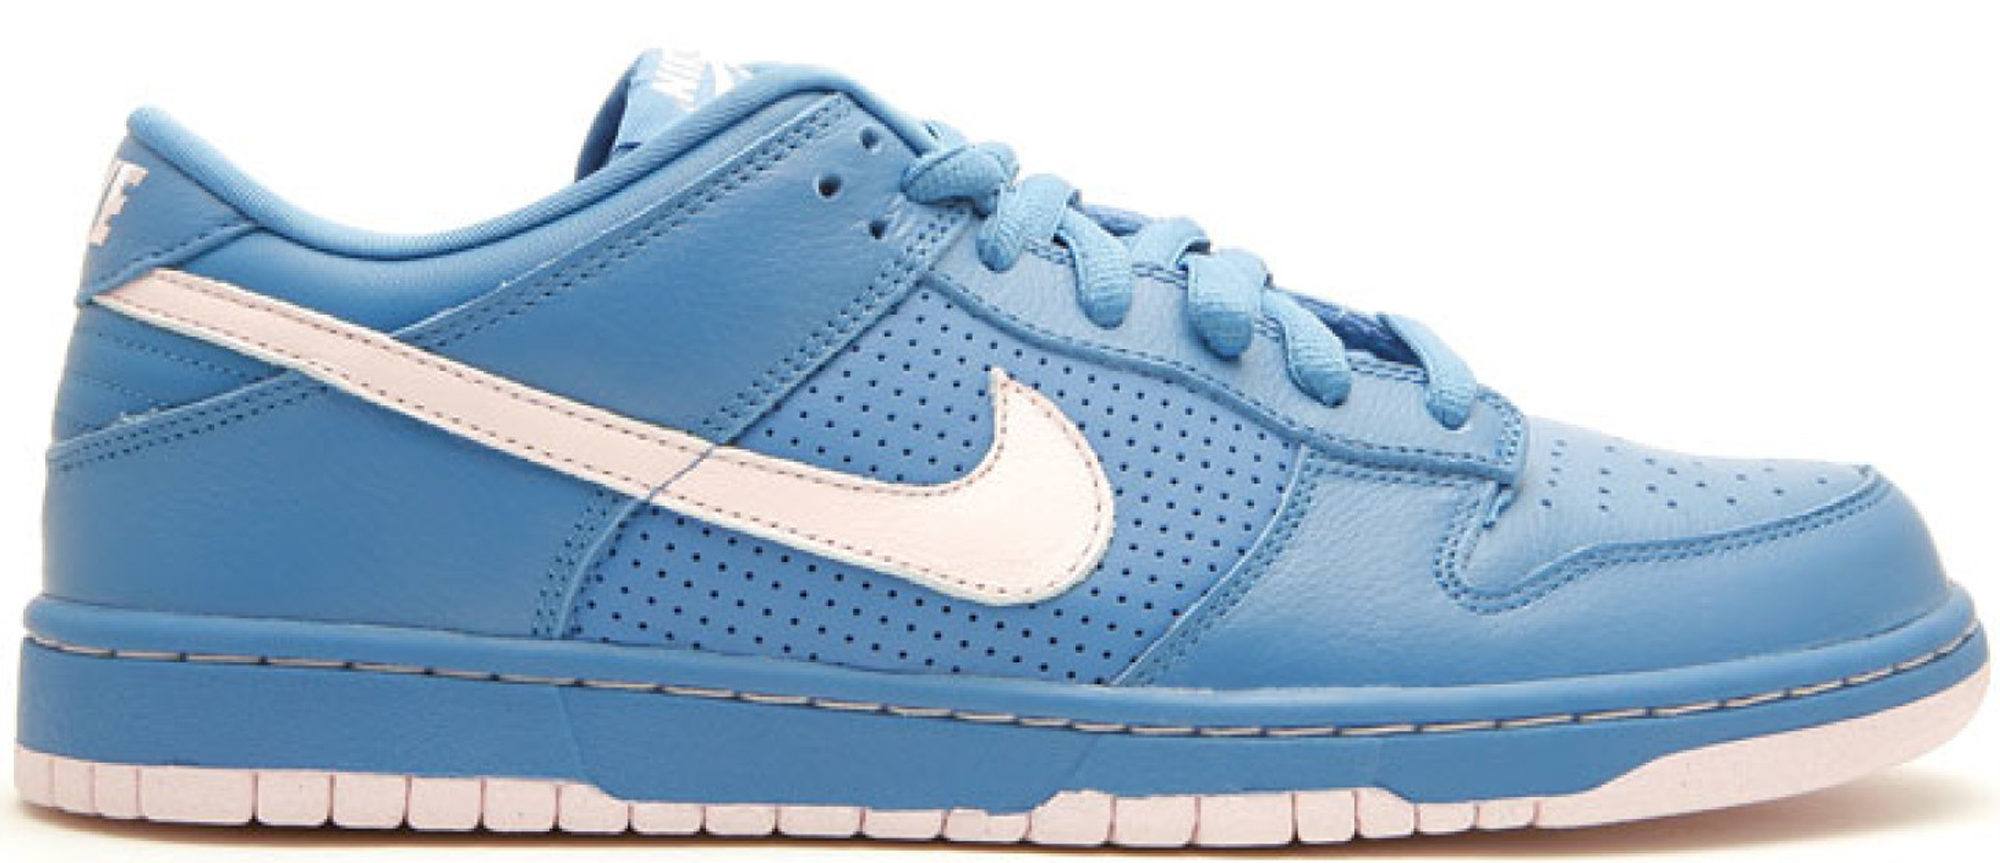 Nike SB Dunk Low Varsity Blue Pink Ice